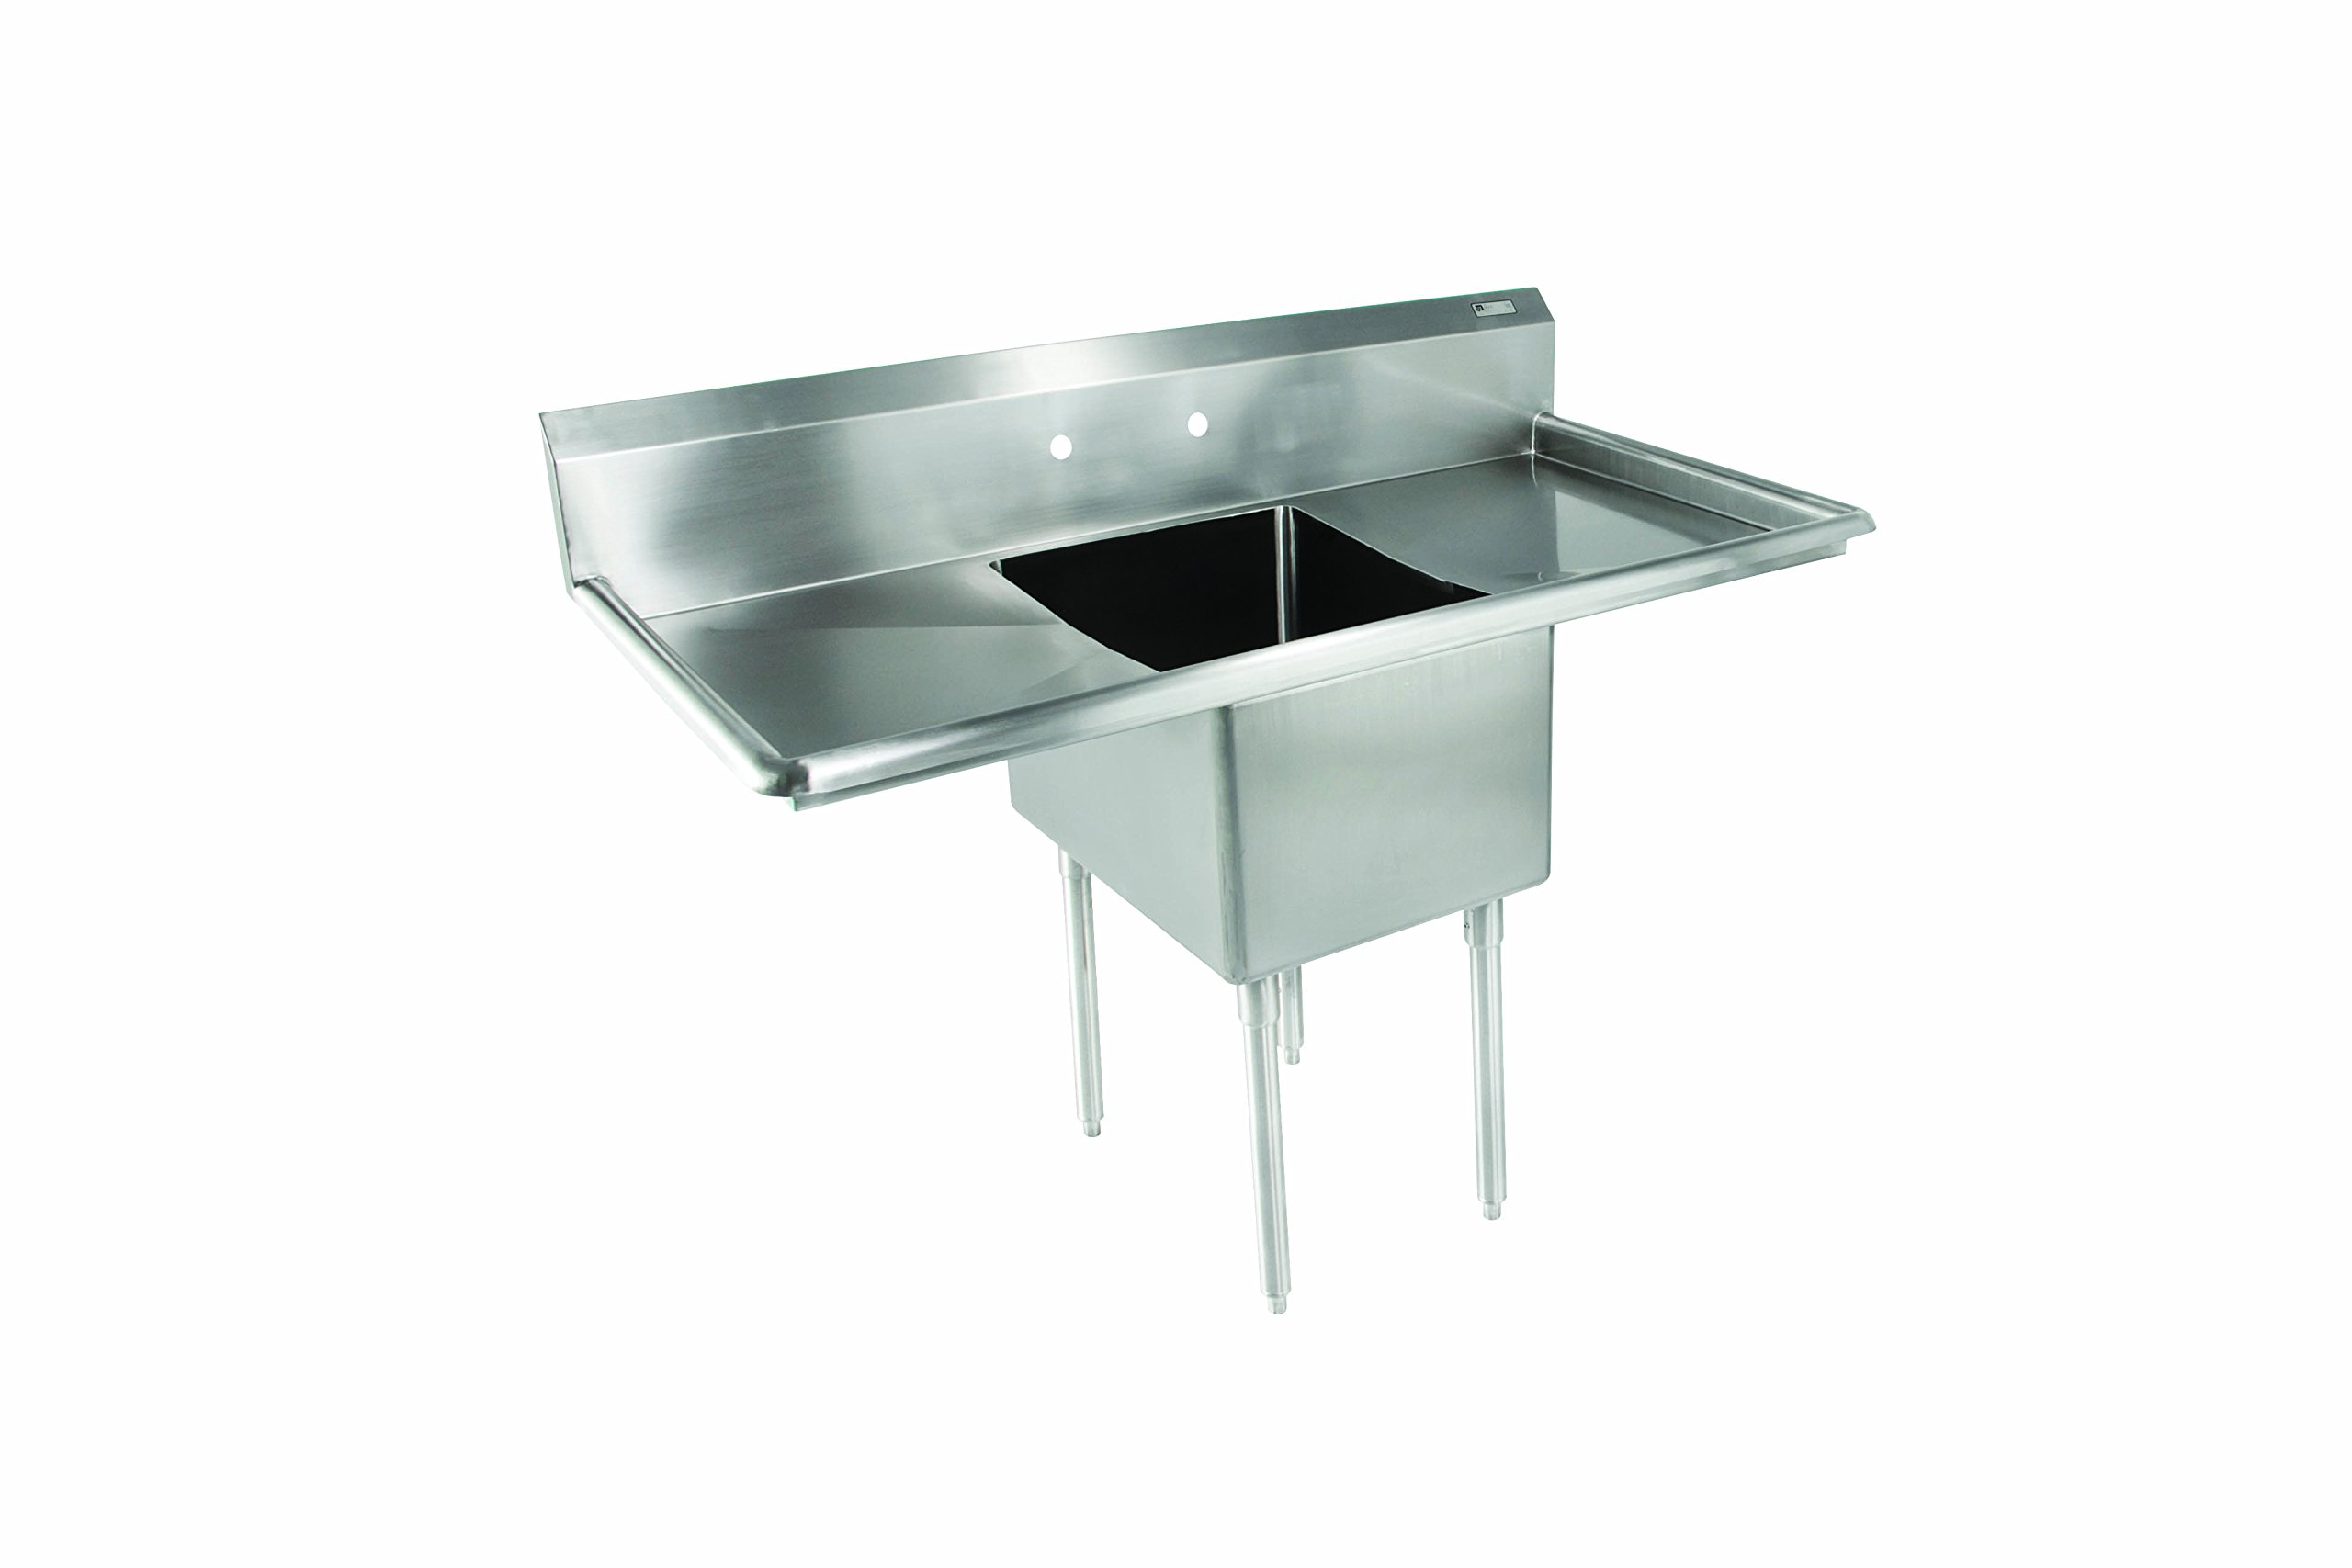 John Boos E Series Stainless Steel Sink, 12'' Deep Bowl, 1 Compartment, 18'' Left and Right Hand Side Drainboard, 52'' Length x 25-1/2'' Width